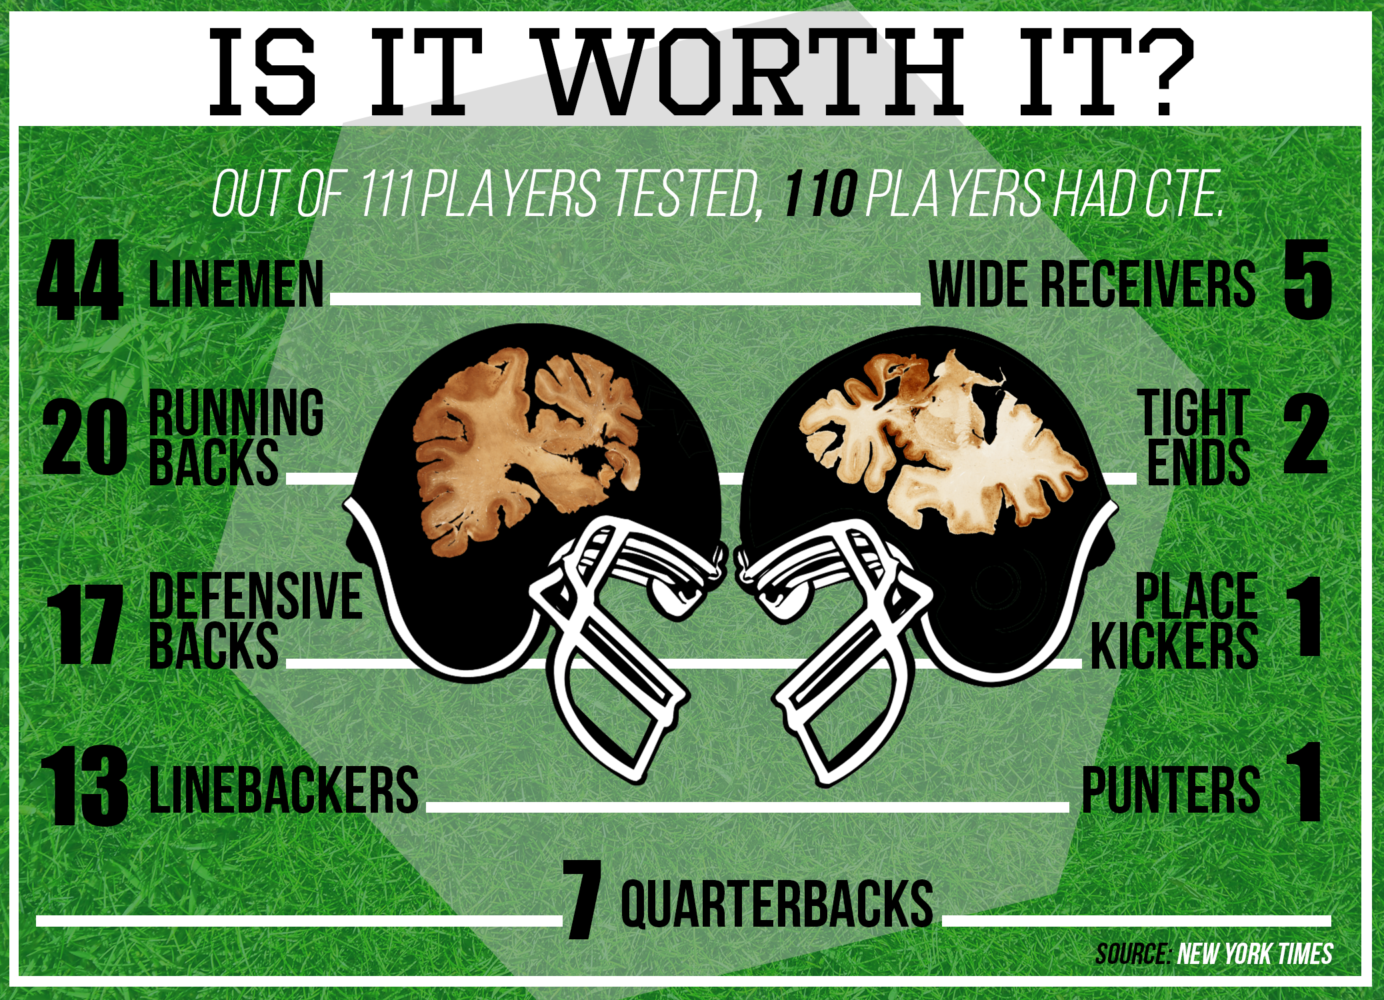 110 out of 111 former NFL players observed had chronic traumatic encephalopathy, commonly known as CTE according to the New York Times. CTE is the result of repeated head trauma over a long span of time.